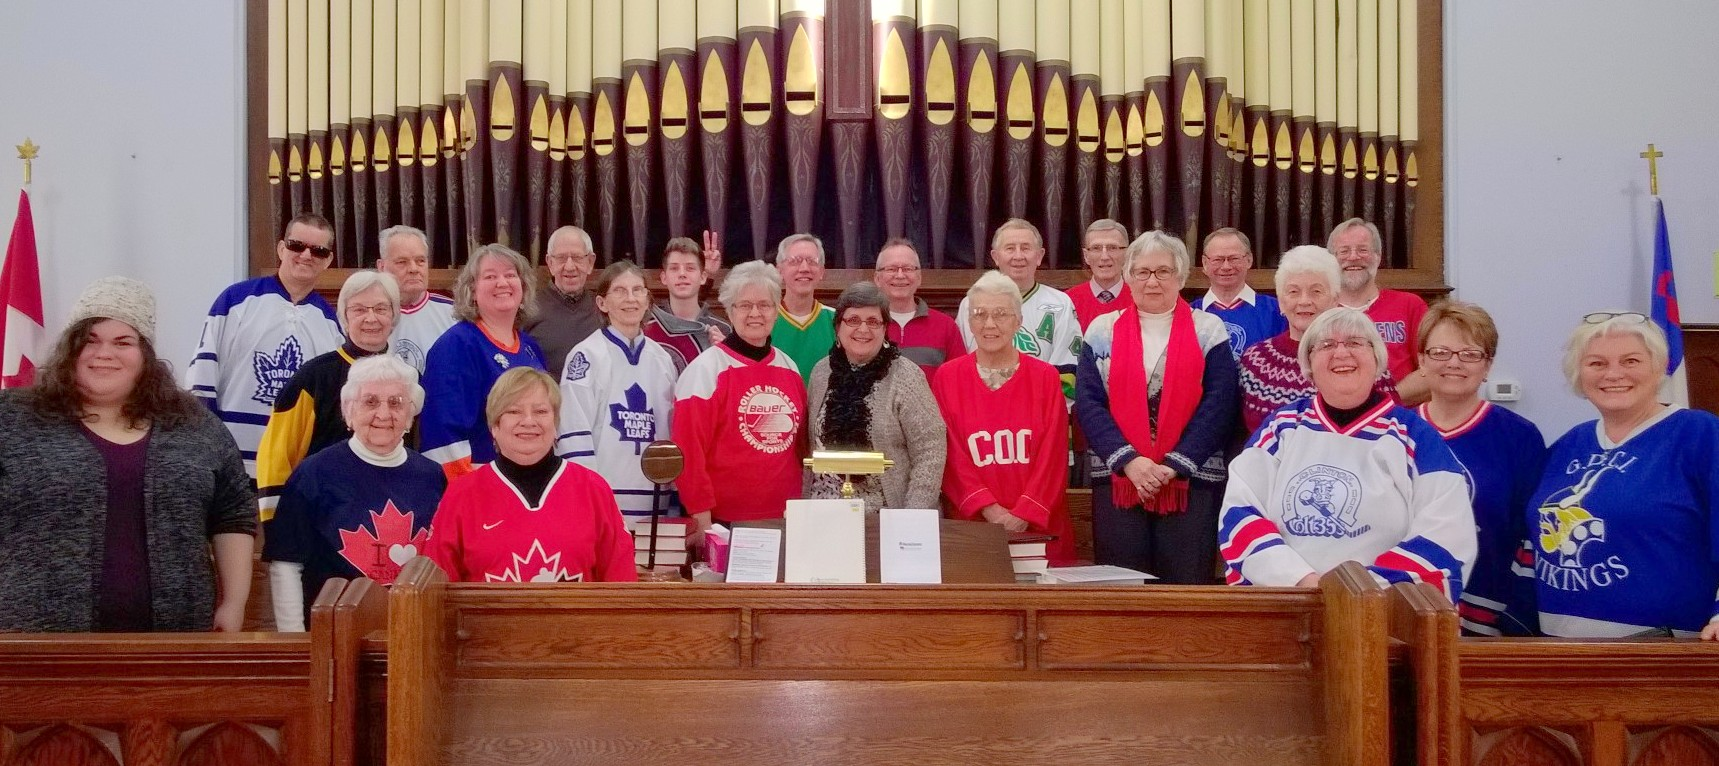 hockey_sunday_choir.jpg